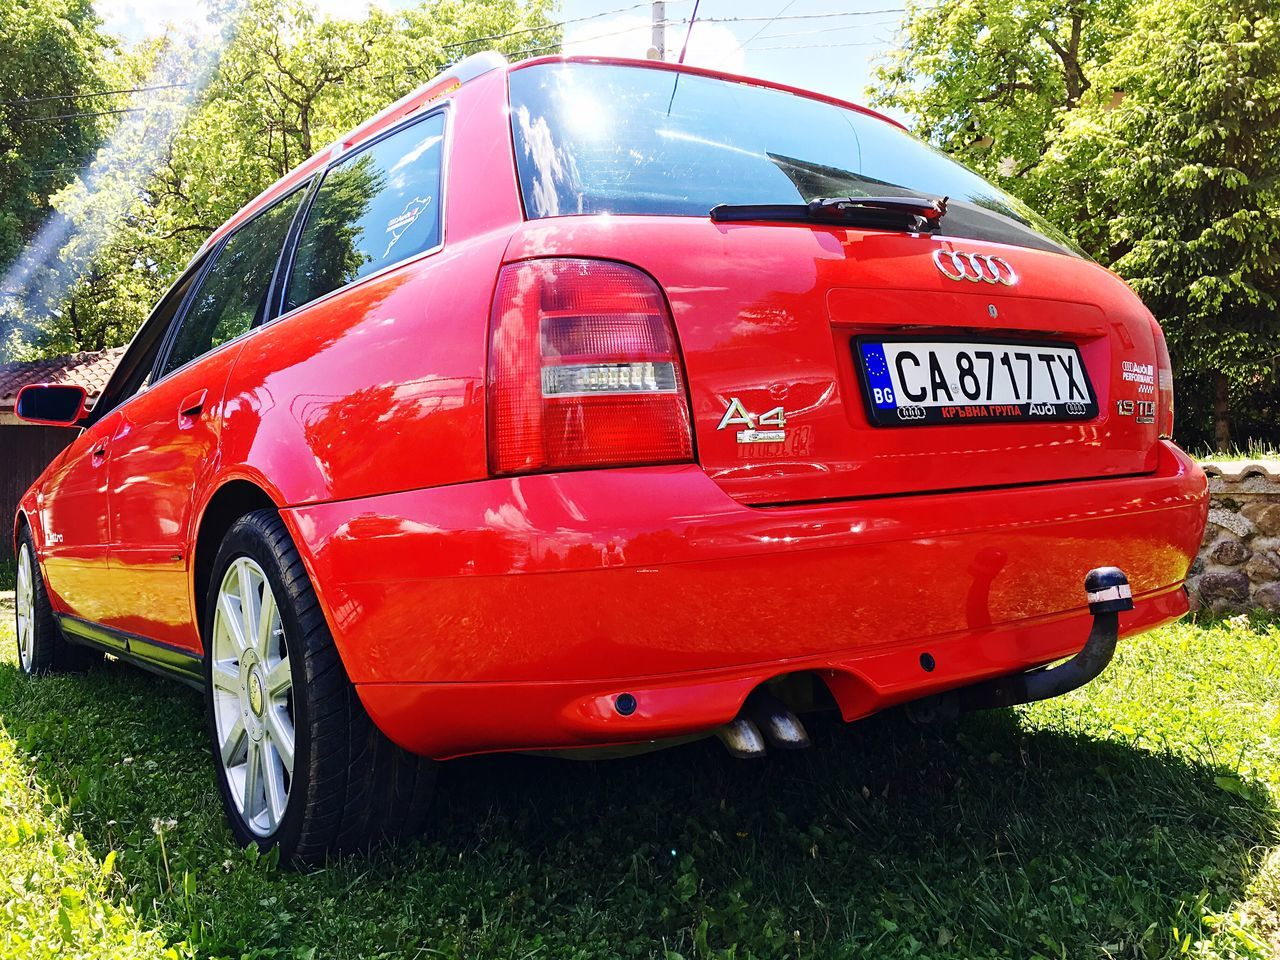 Audi Red Audia4 Cars Oldschool 1.9Tdi Facelift LoveCars Sportcar Contrast Clean Colorful